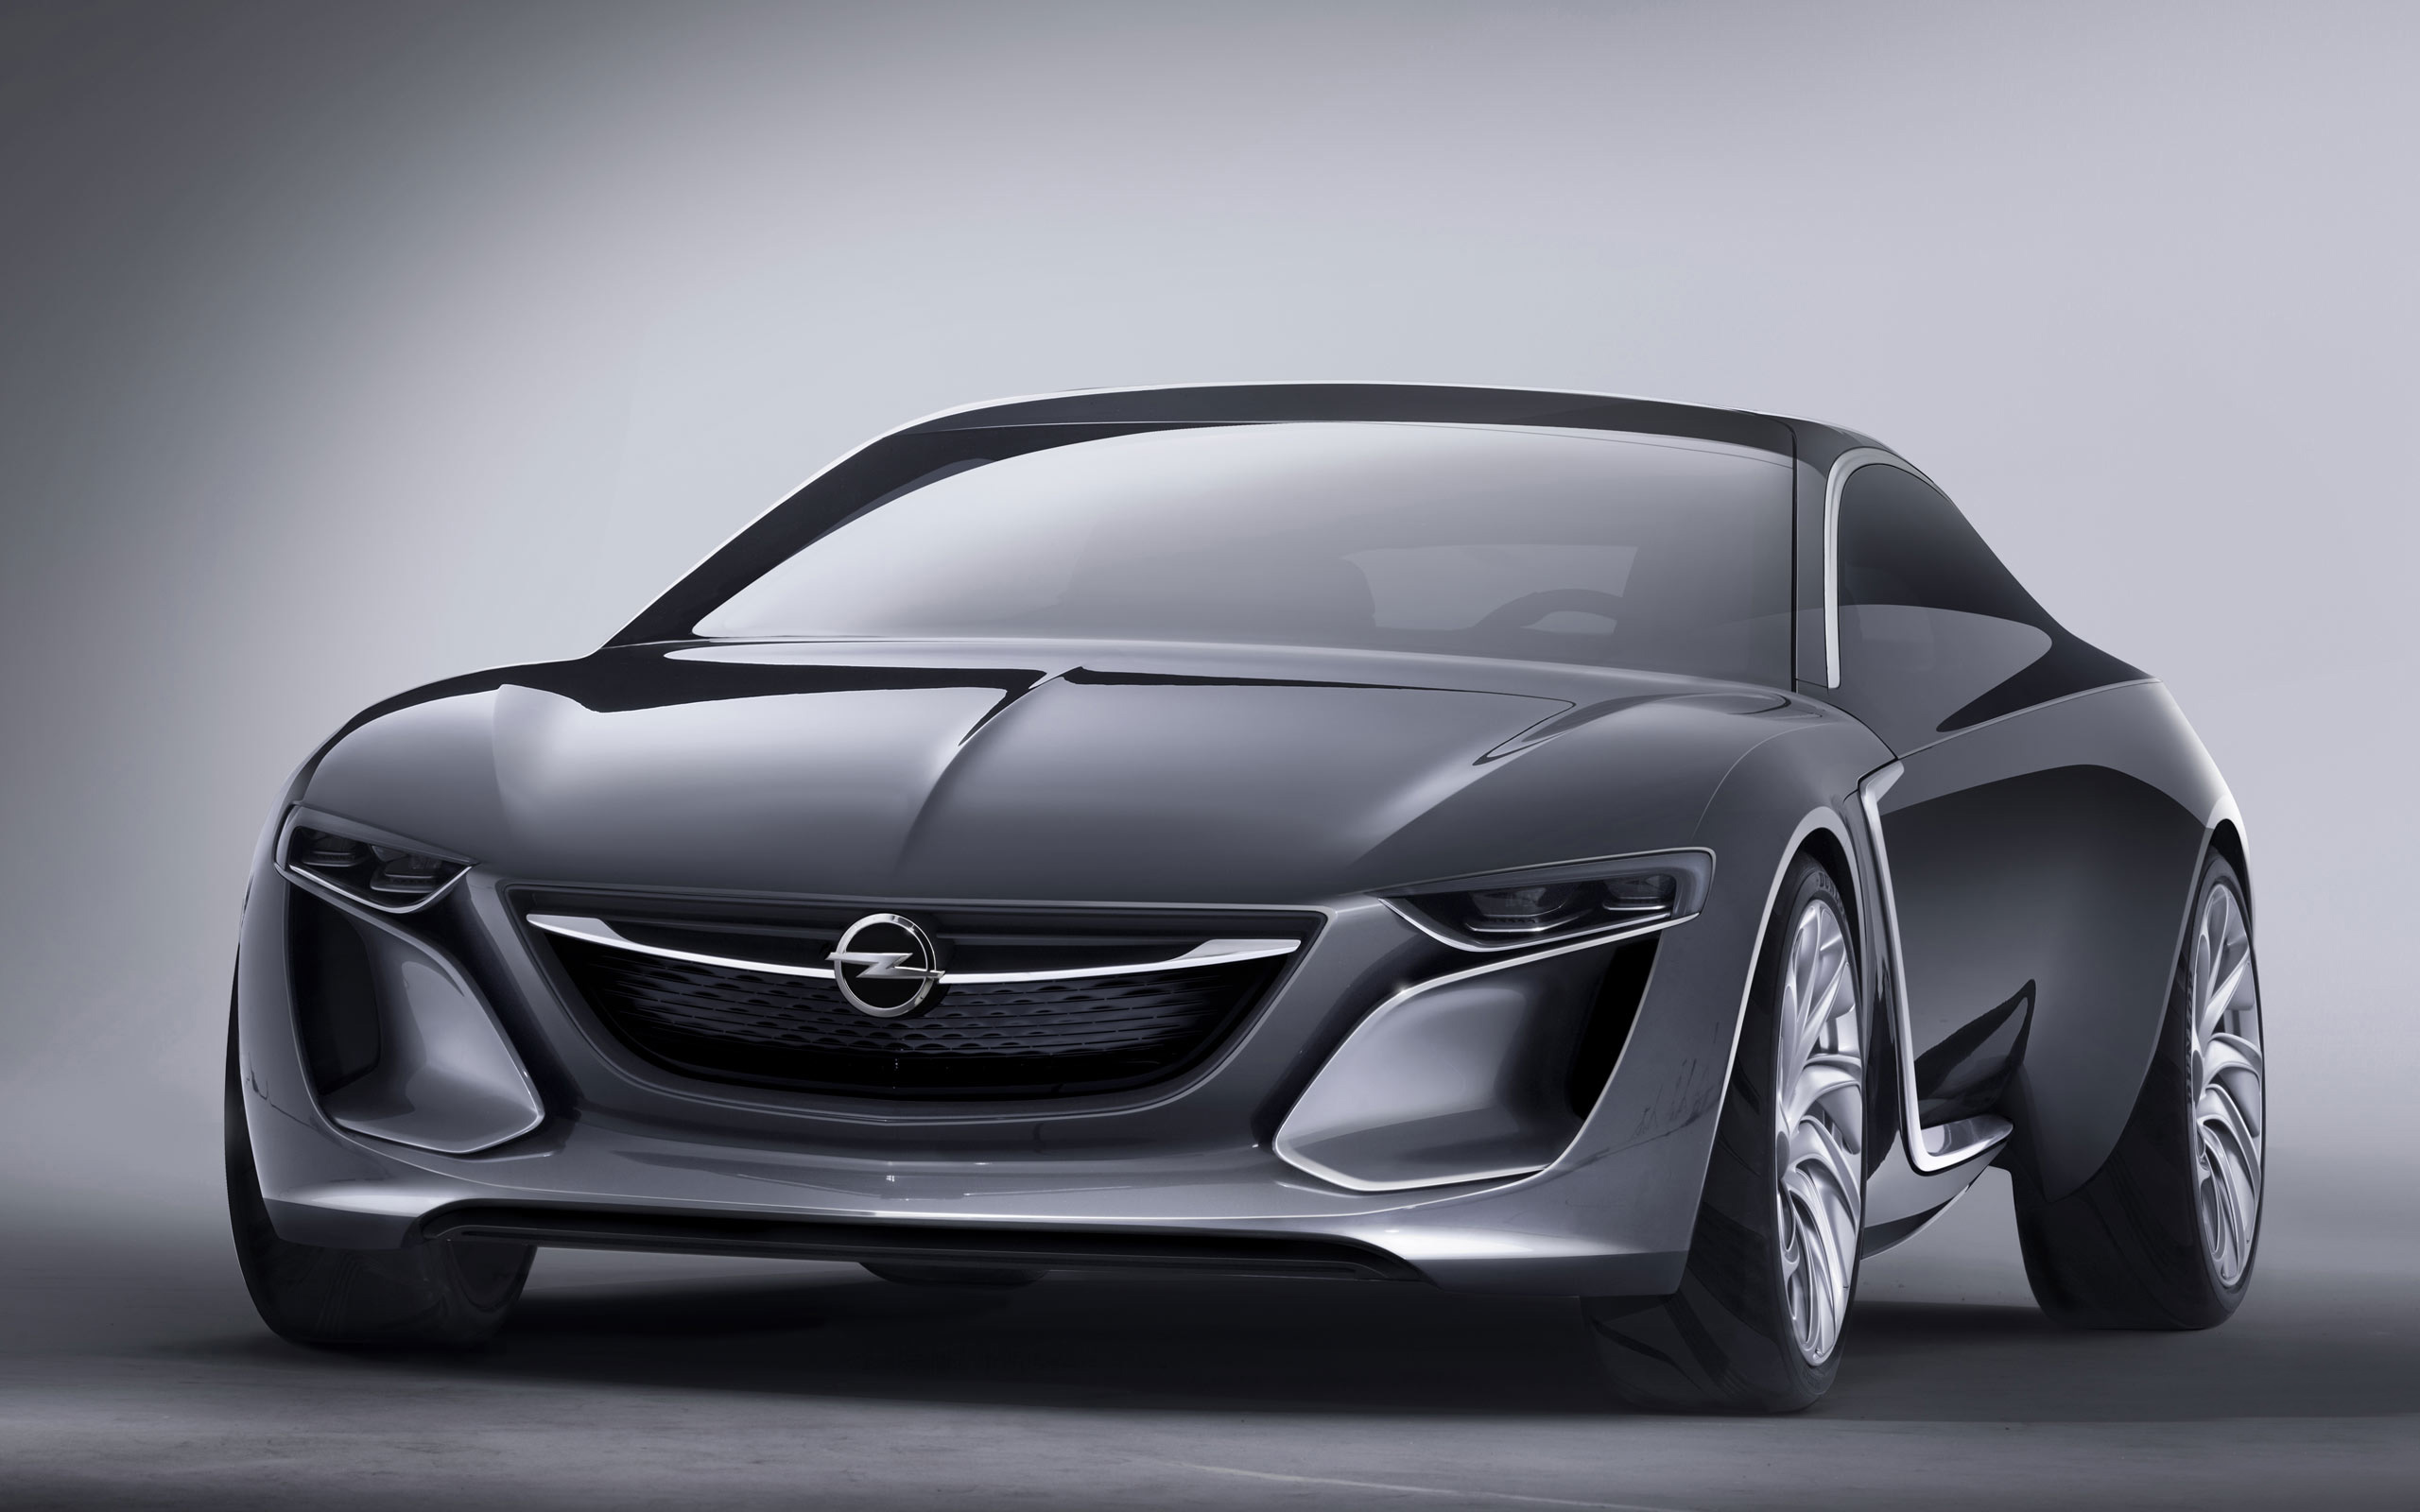 2013 opel monza concept wallpaper | hd car wallpapers | id #3653